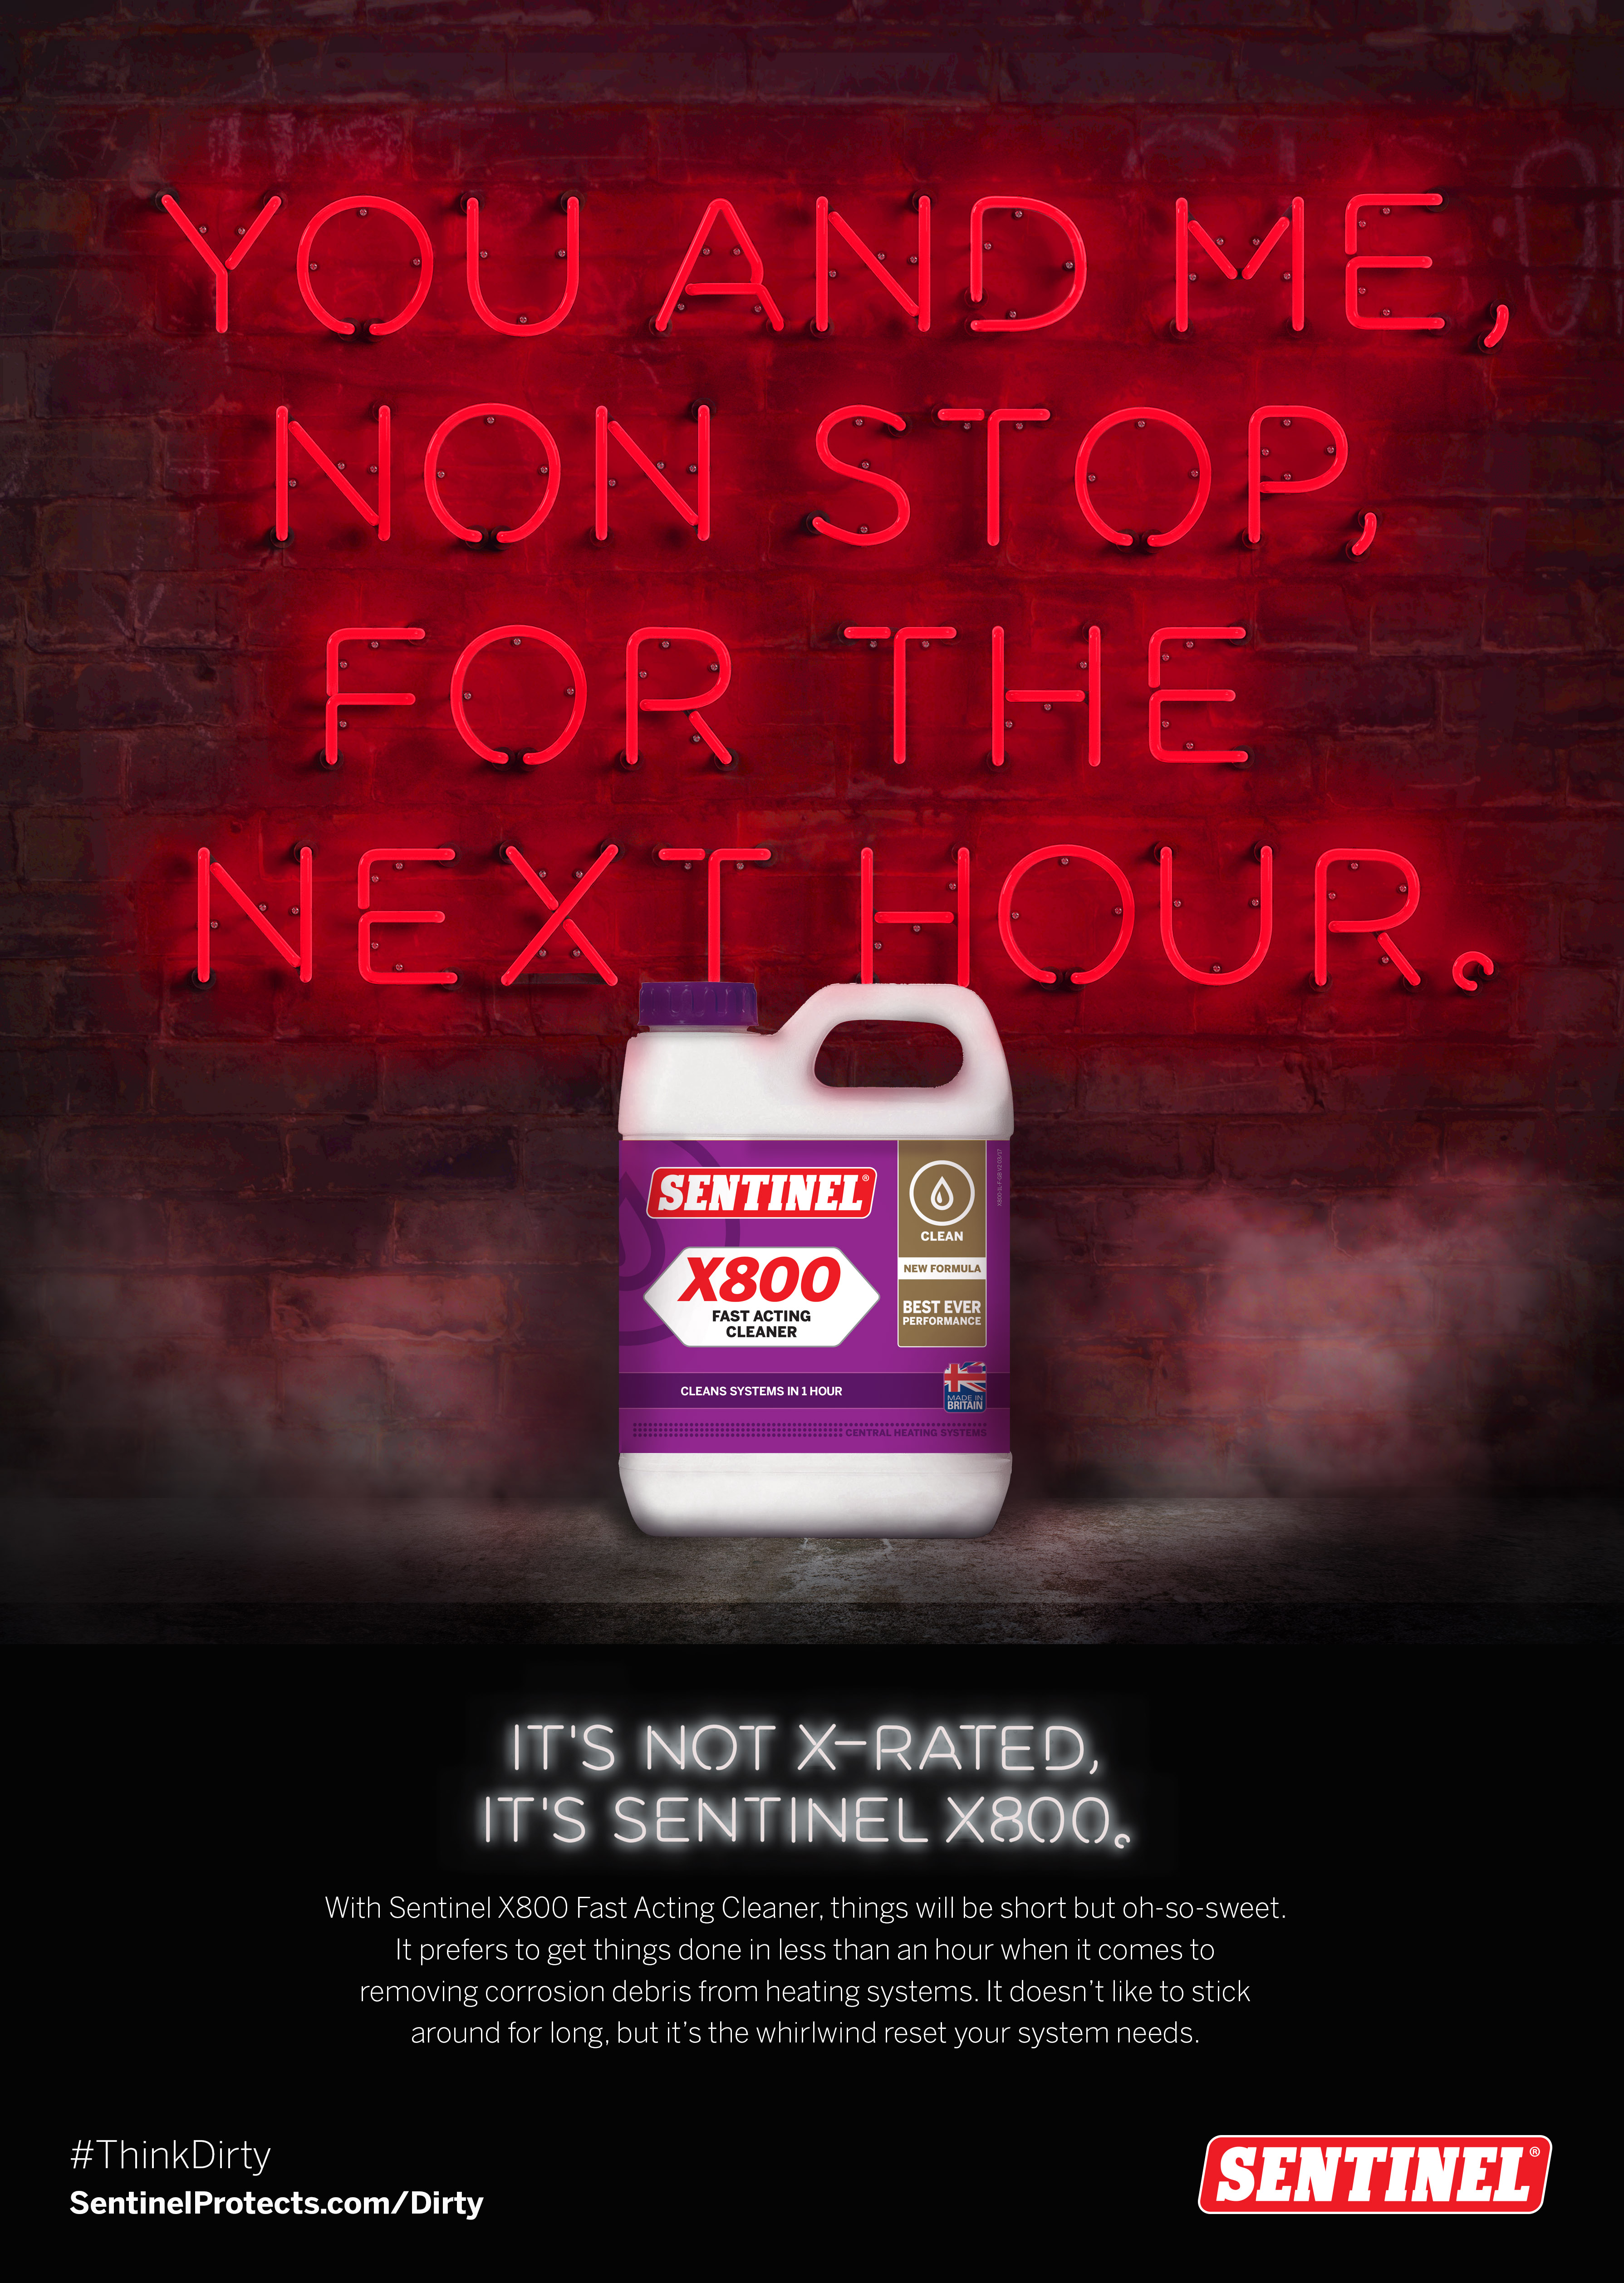 You and me, non stop example - Sentinel Dirty Campaign